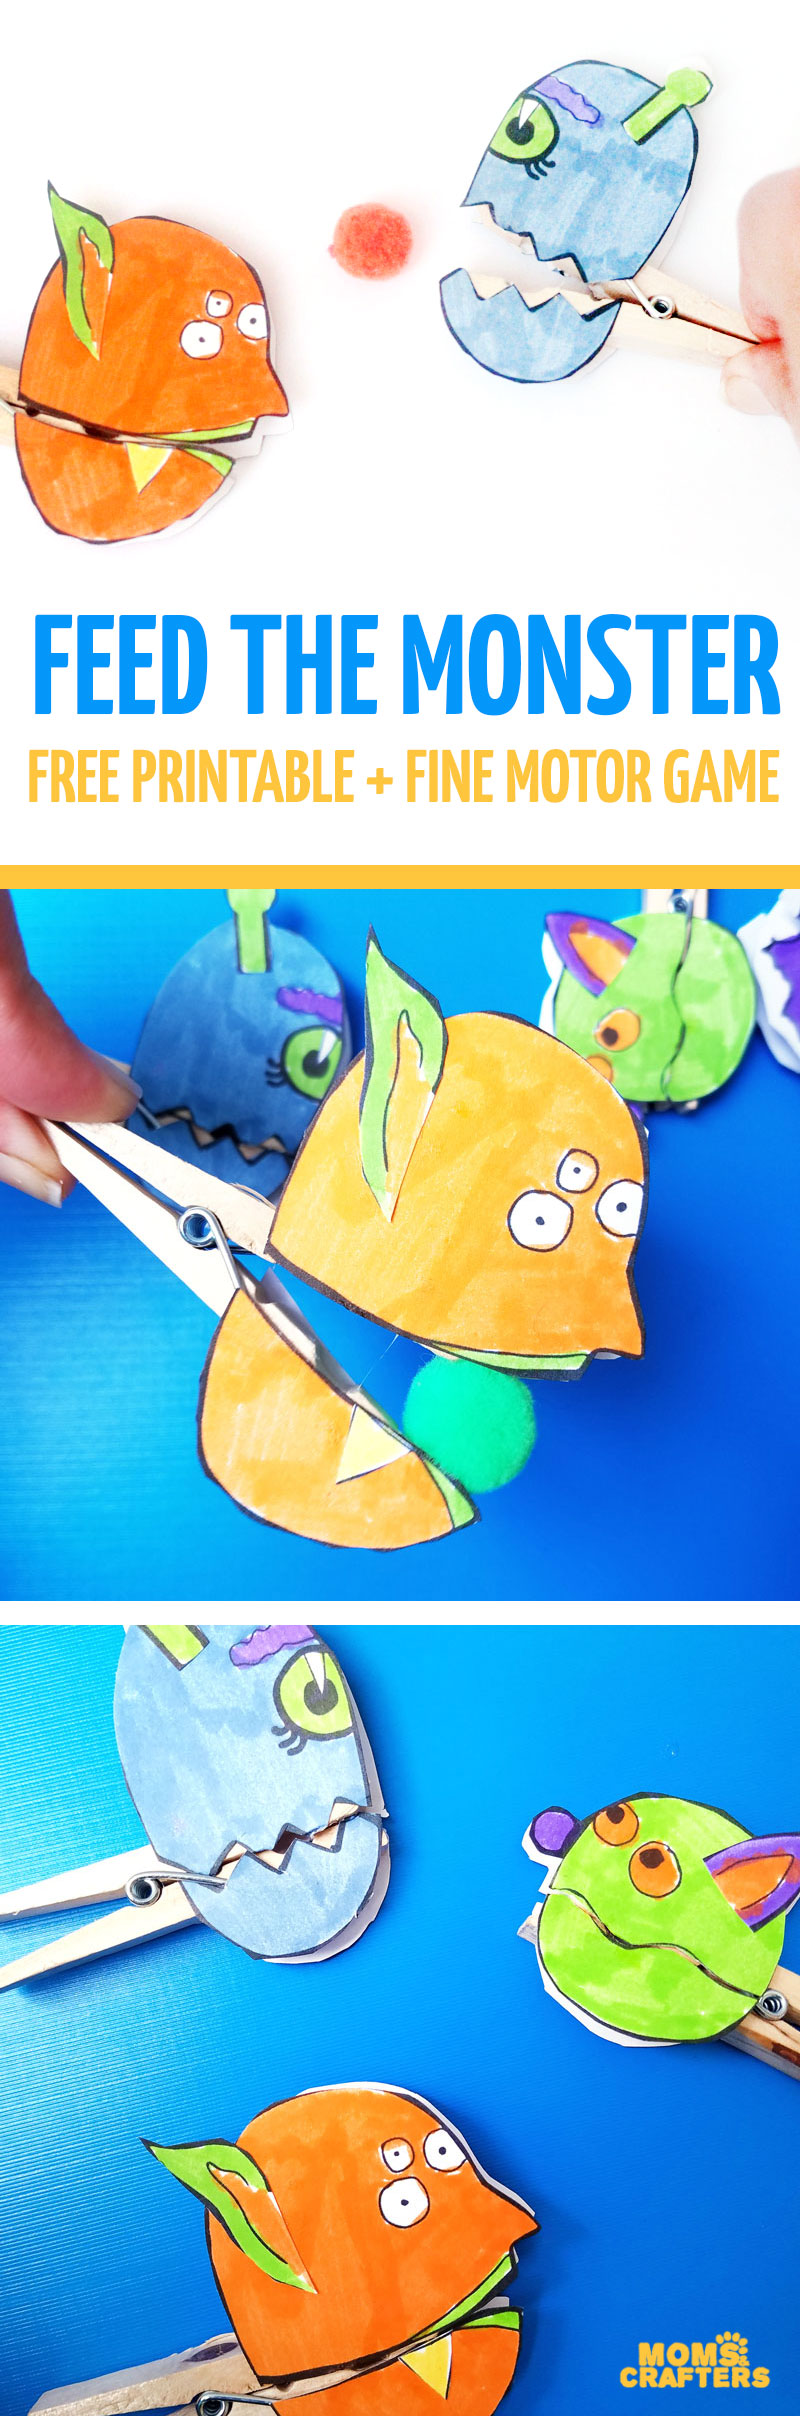 "Make these adorable monster clothespin puppets using the free printable template - and then play ""Feed the Monster"" - a fun fine motor activity and game to help improve pincer grasp! You'll love this paper craft and free printable activity for kids. It's also great for Halloween crafts but fun for year-round too."